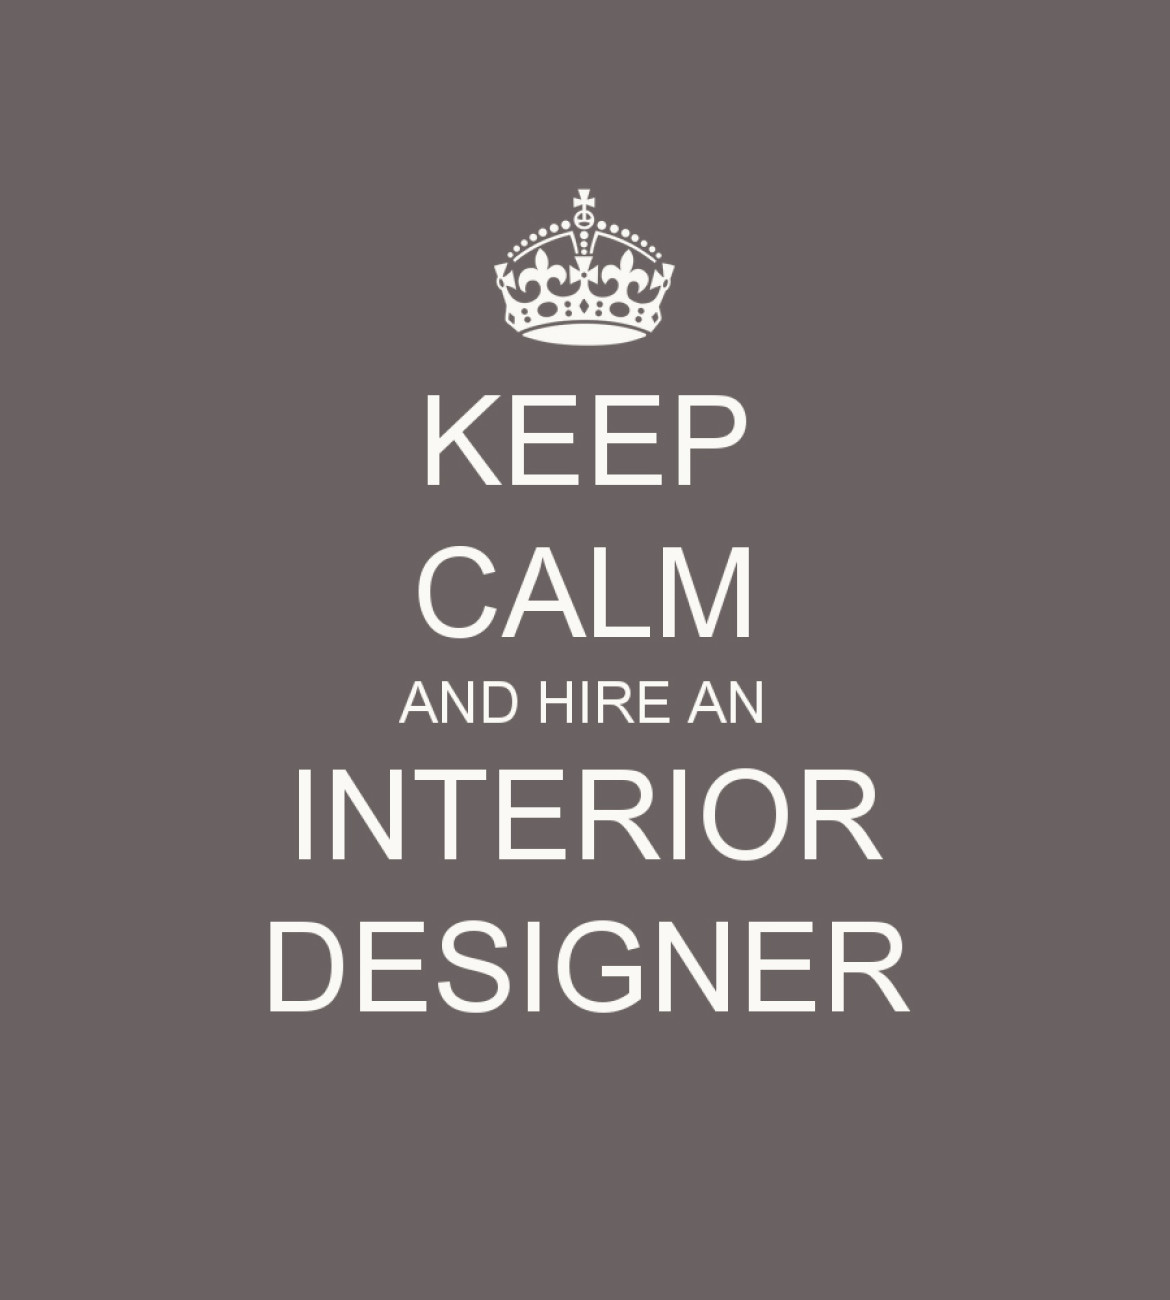 How to hire an interior decorator - How to hire an interior designer ...